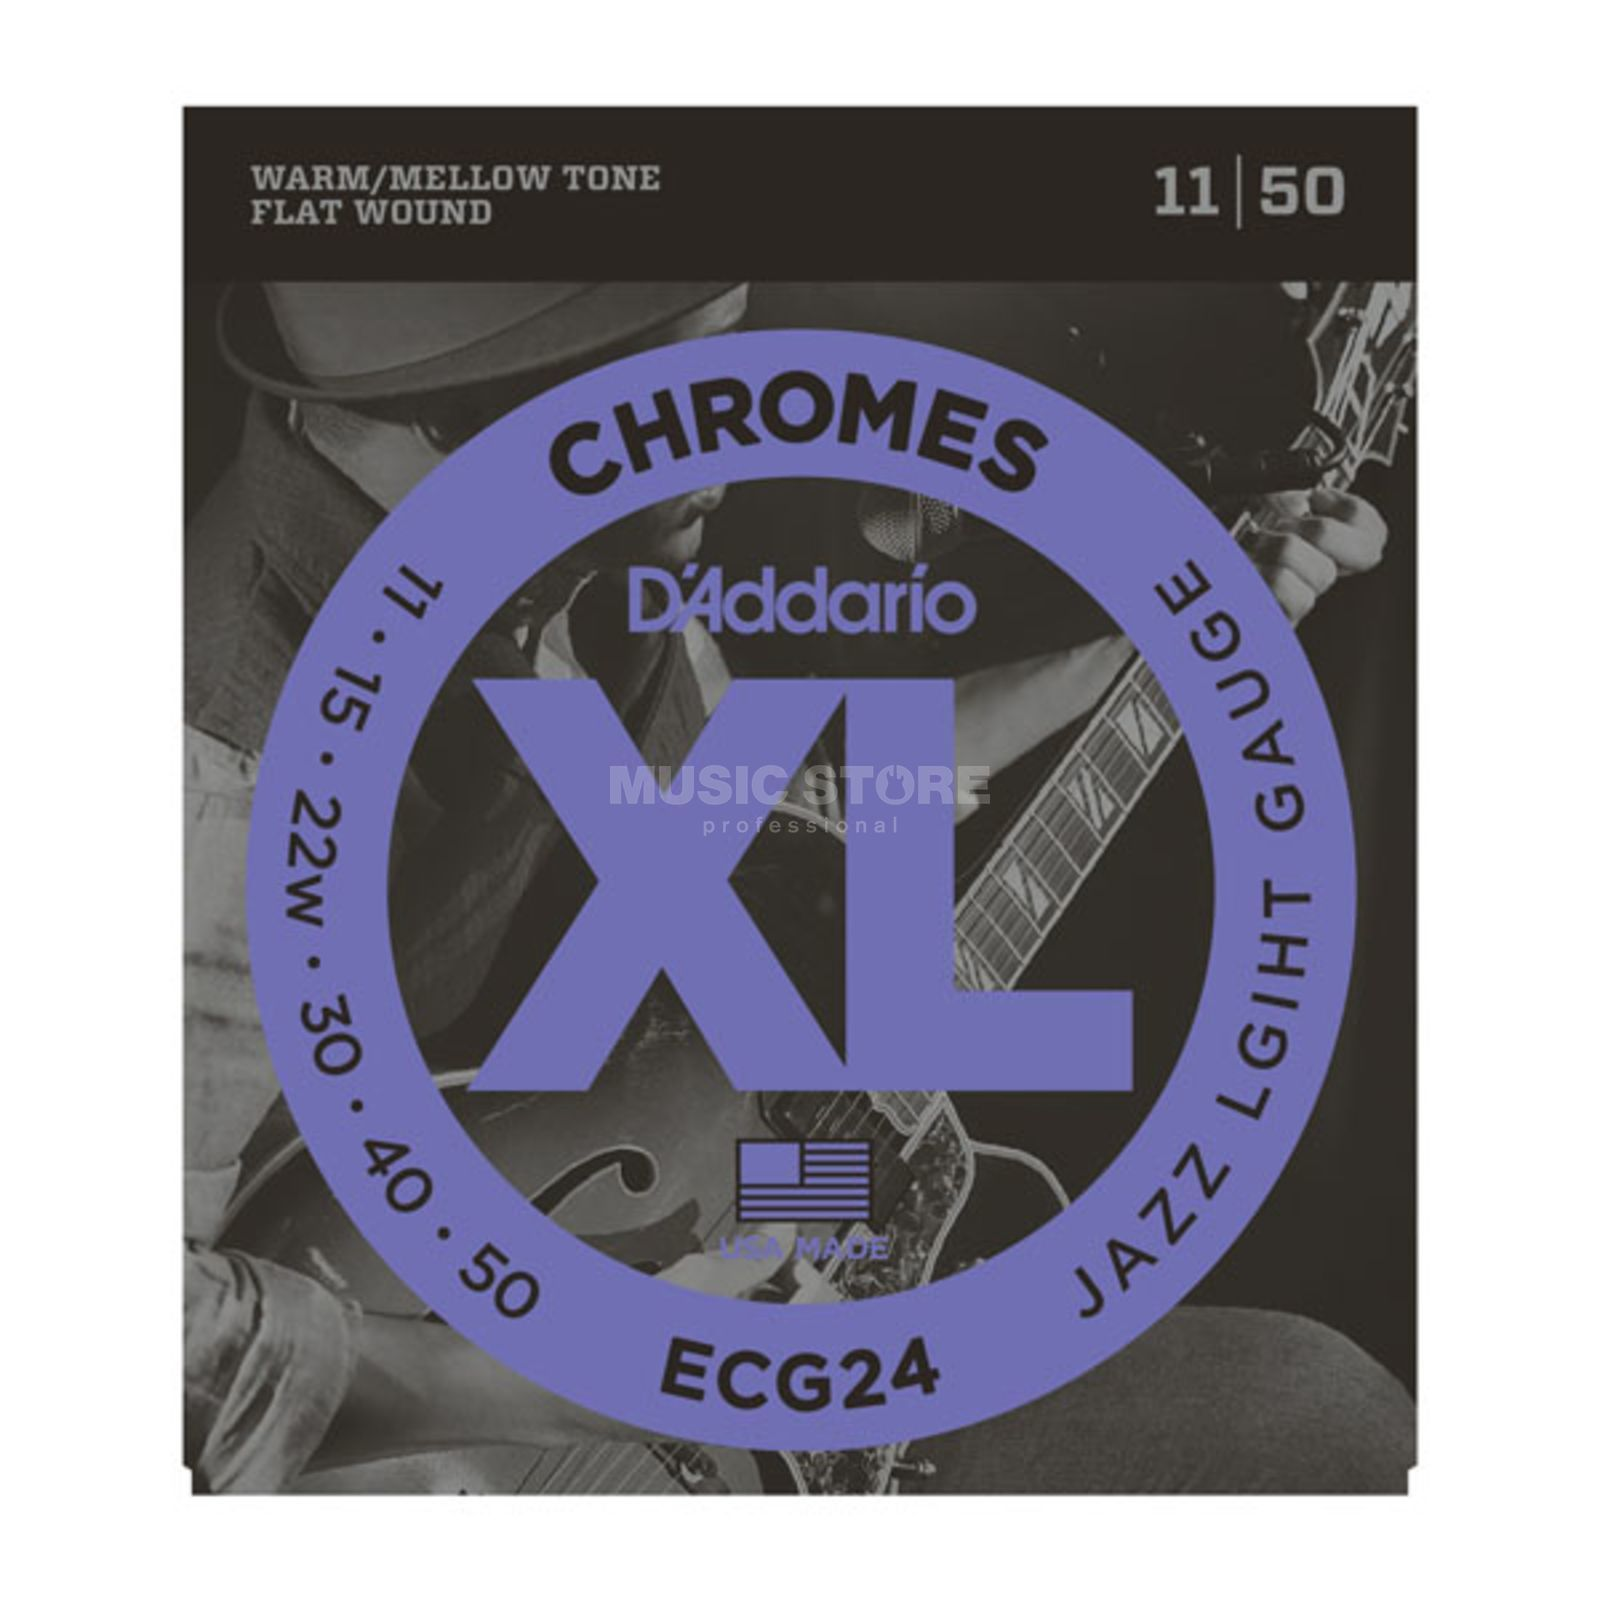 D'Addario E-Guitar Strings ECG24 11-50 Chromes Flatwound Produktbillede